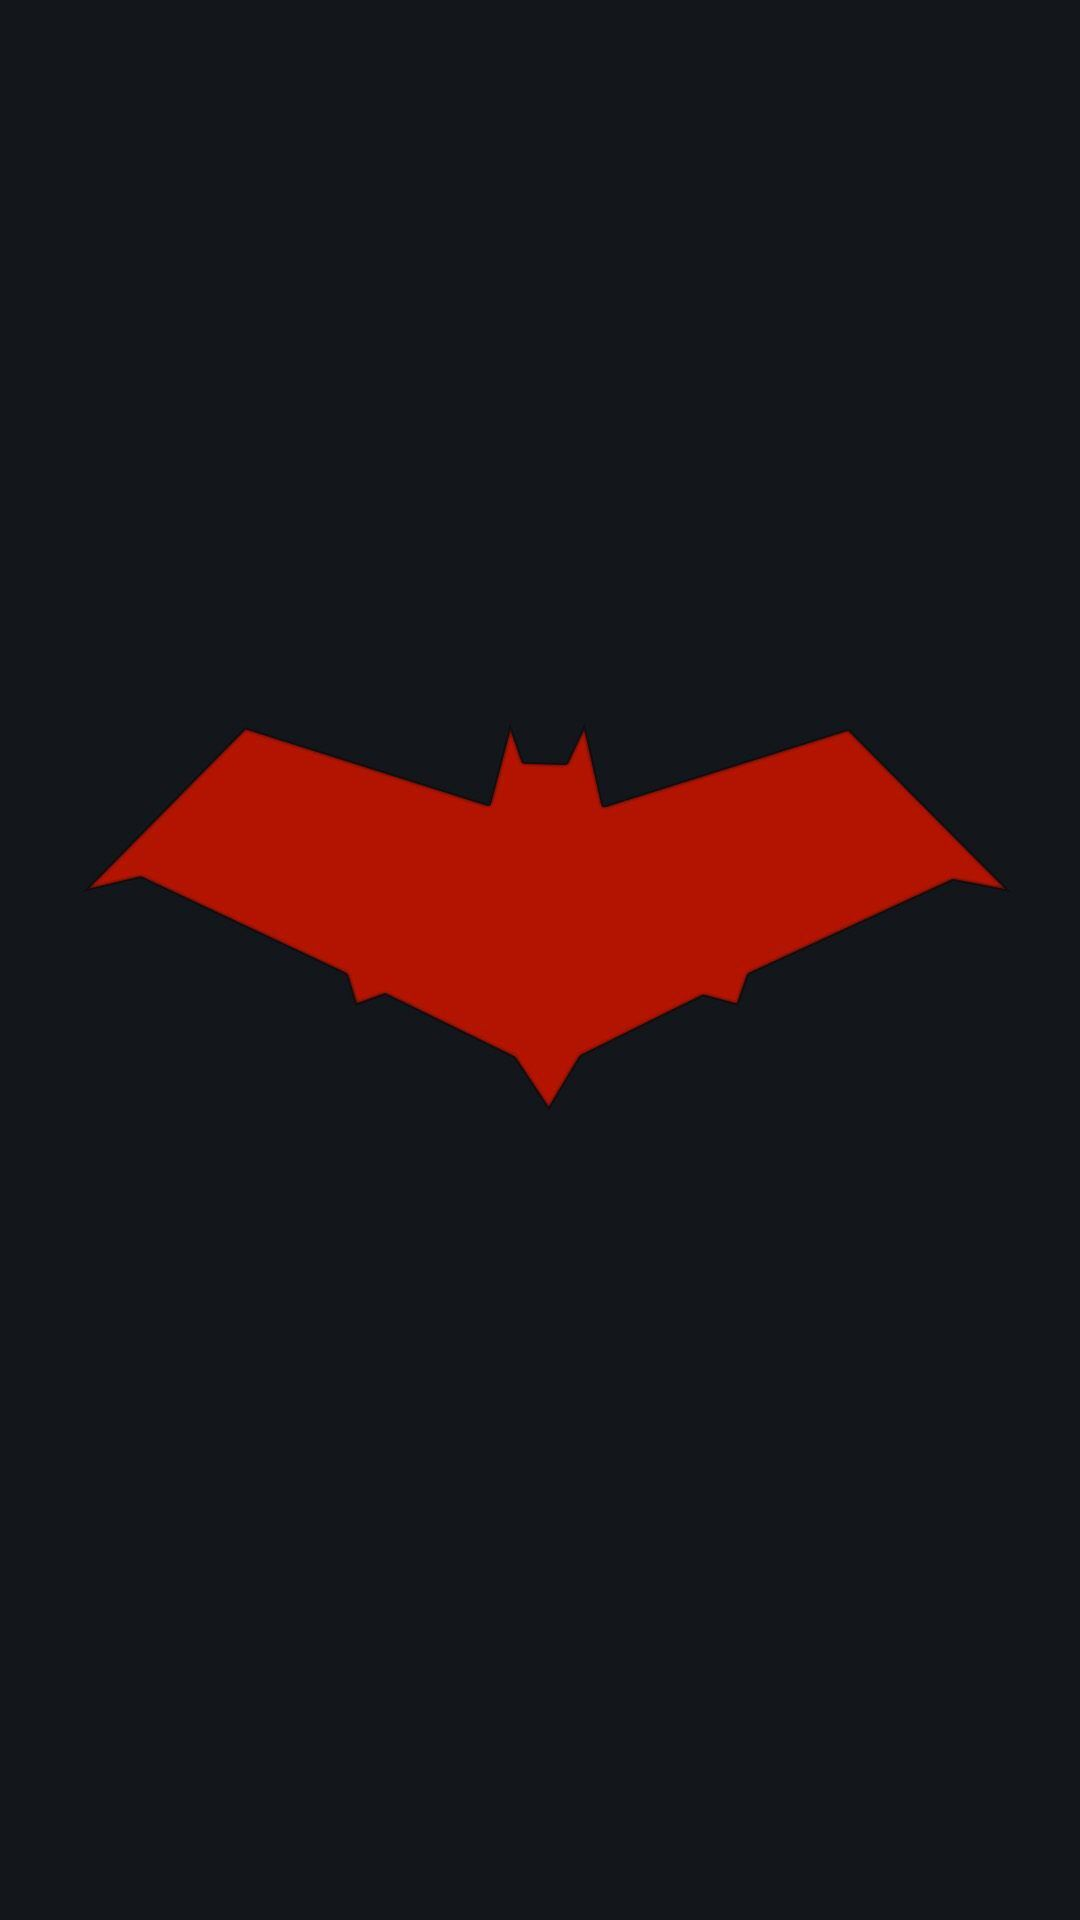 Image From Http Img Loveitsomuch Com Uploads 201410 08 Dr Drawncartoons 20red 20hood 20iphone 206 20plus 20wallpa Red Hood Wallpaper Hood Wallpapers Red Hood